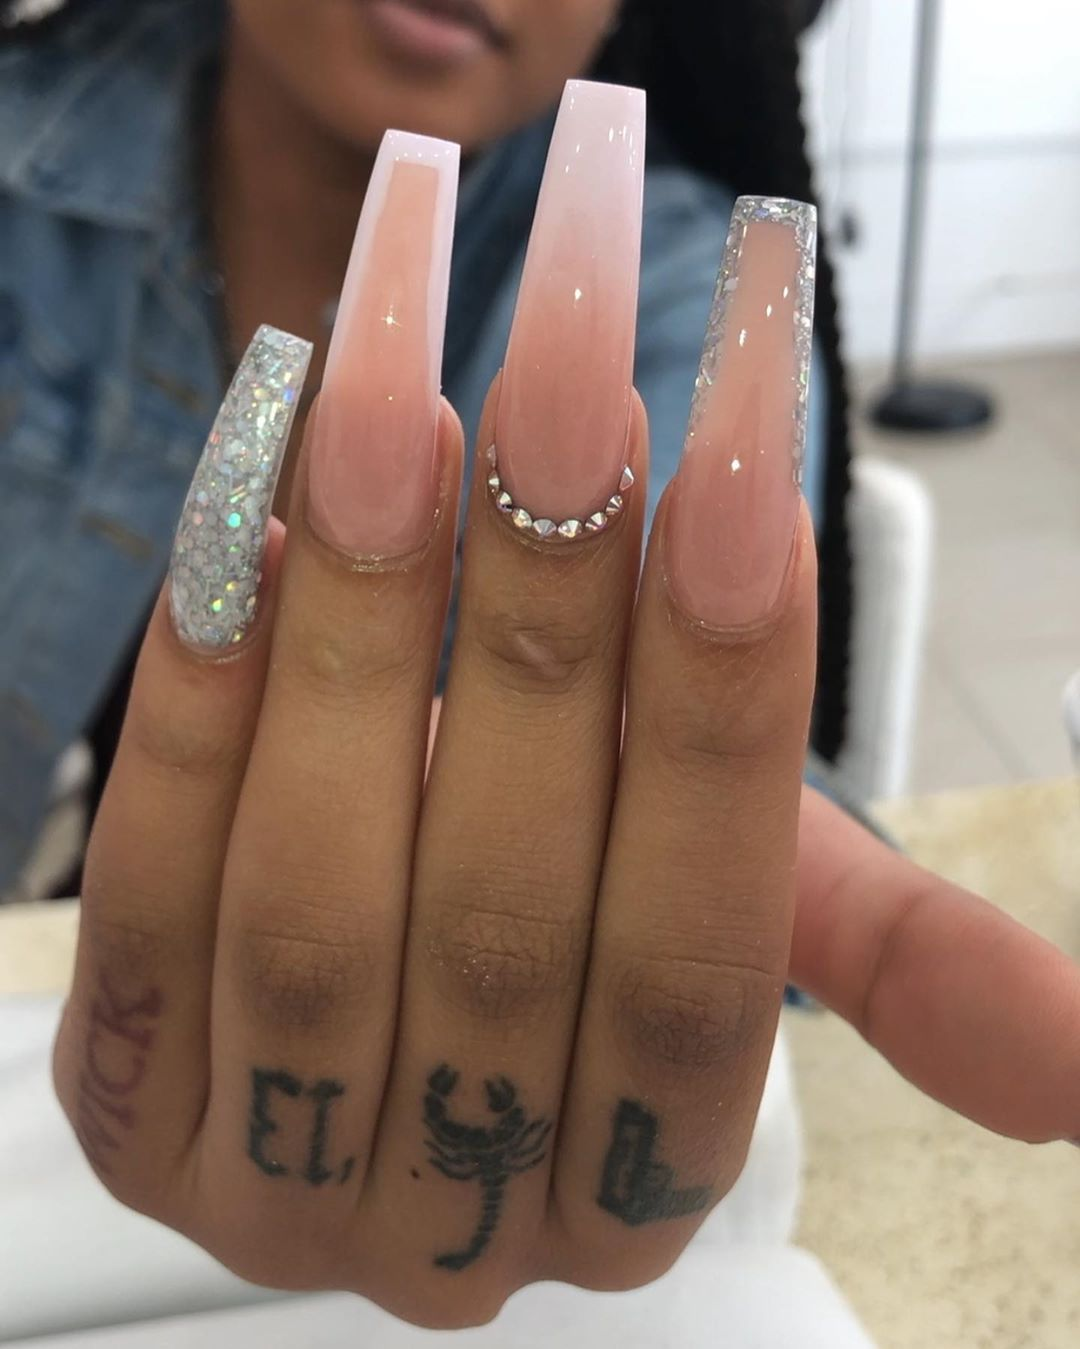 Keirina On Instagram Some Sets I Did On Friday Swipe To See The Rest Acrylicnails Flowernails Long Acrylic Nails Color Changing Nails Nail Designs